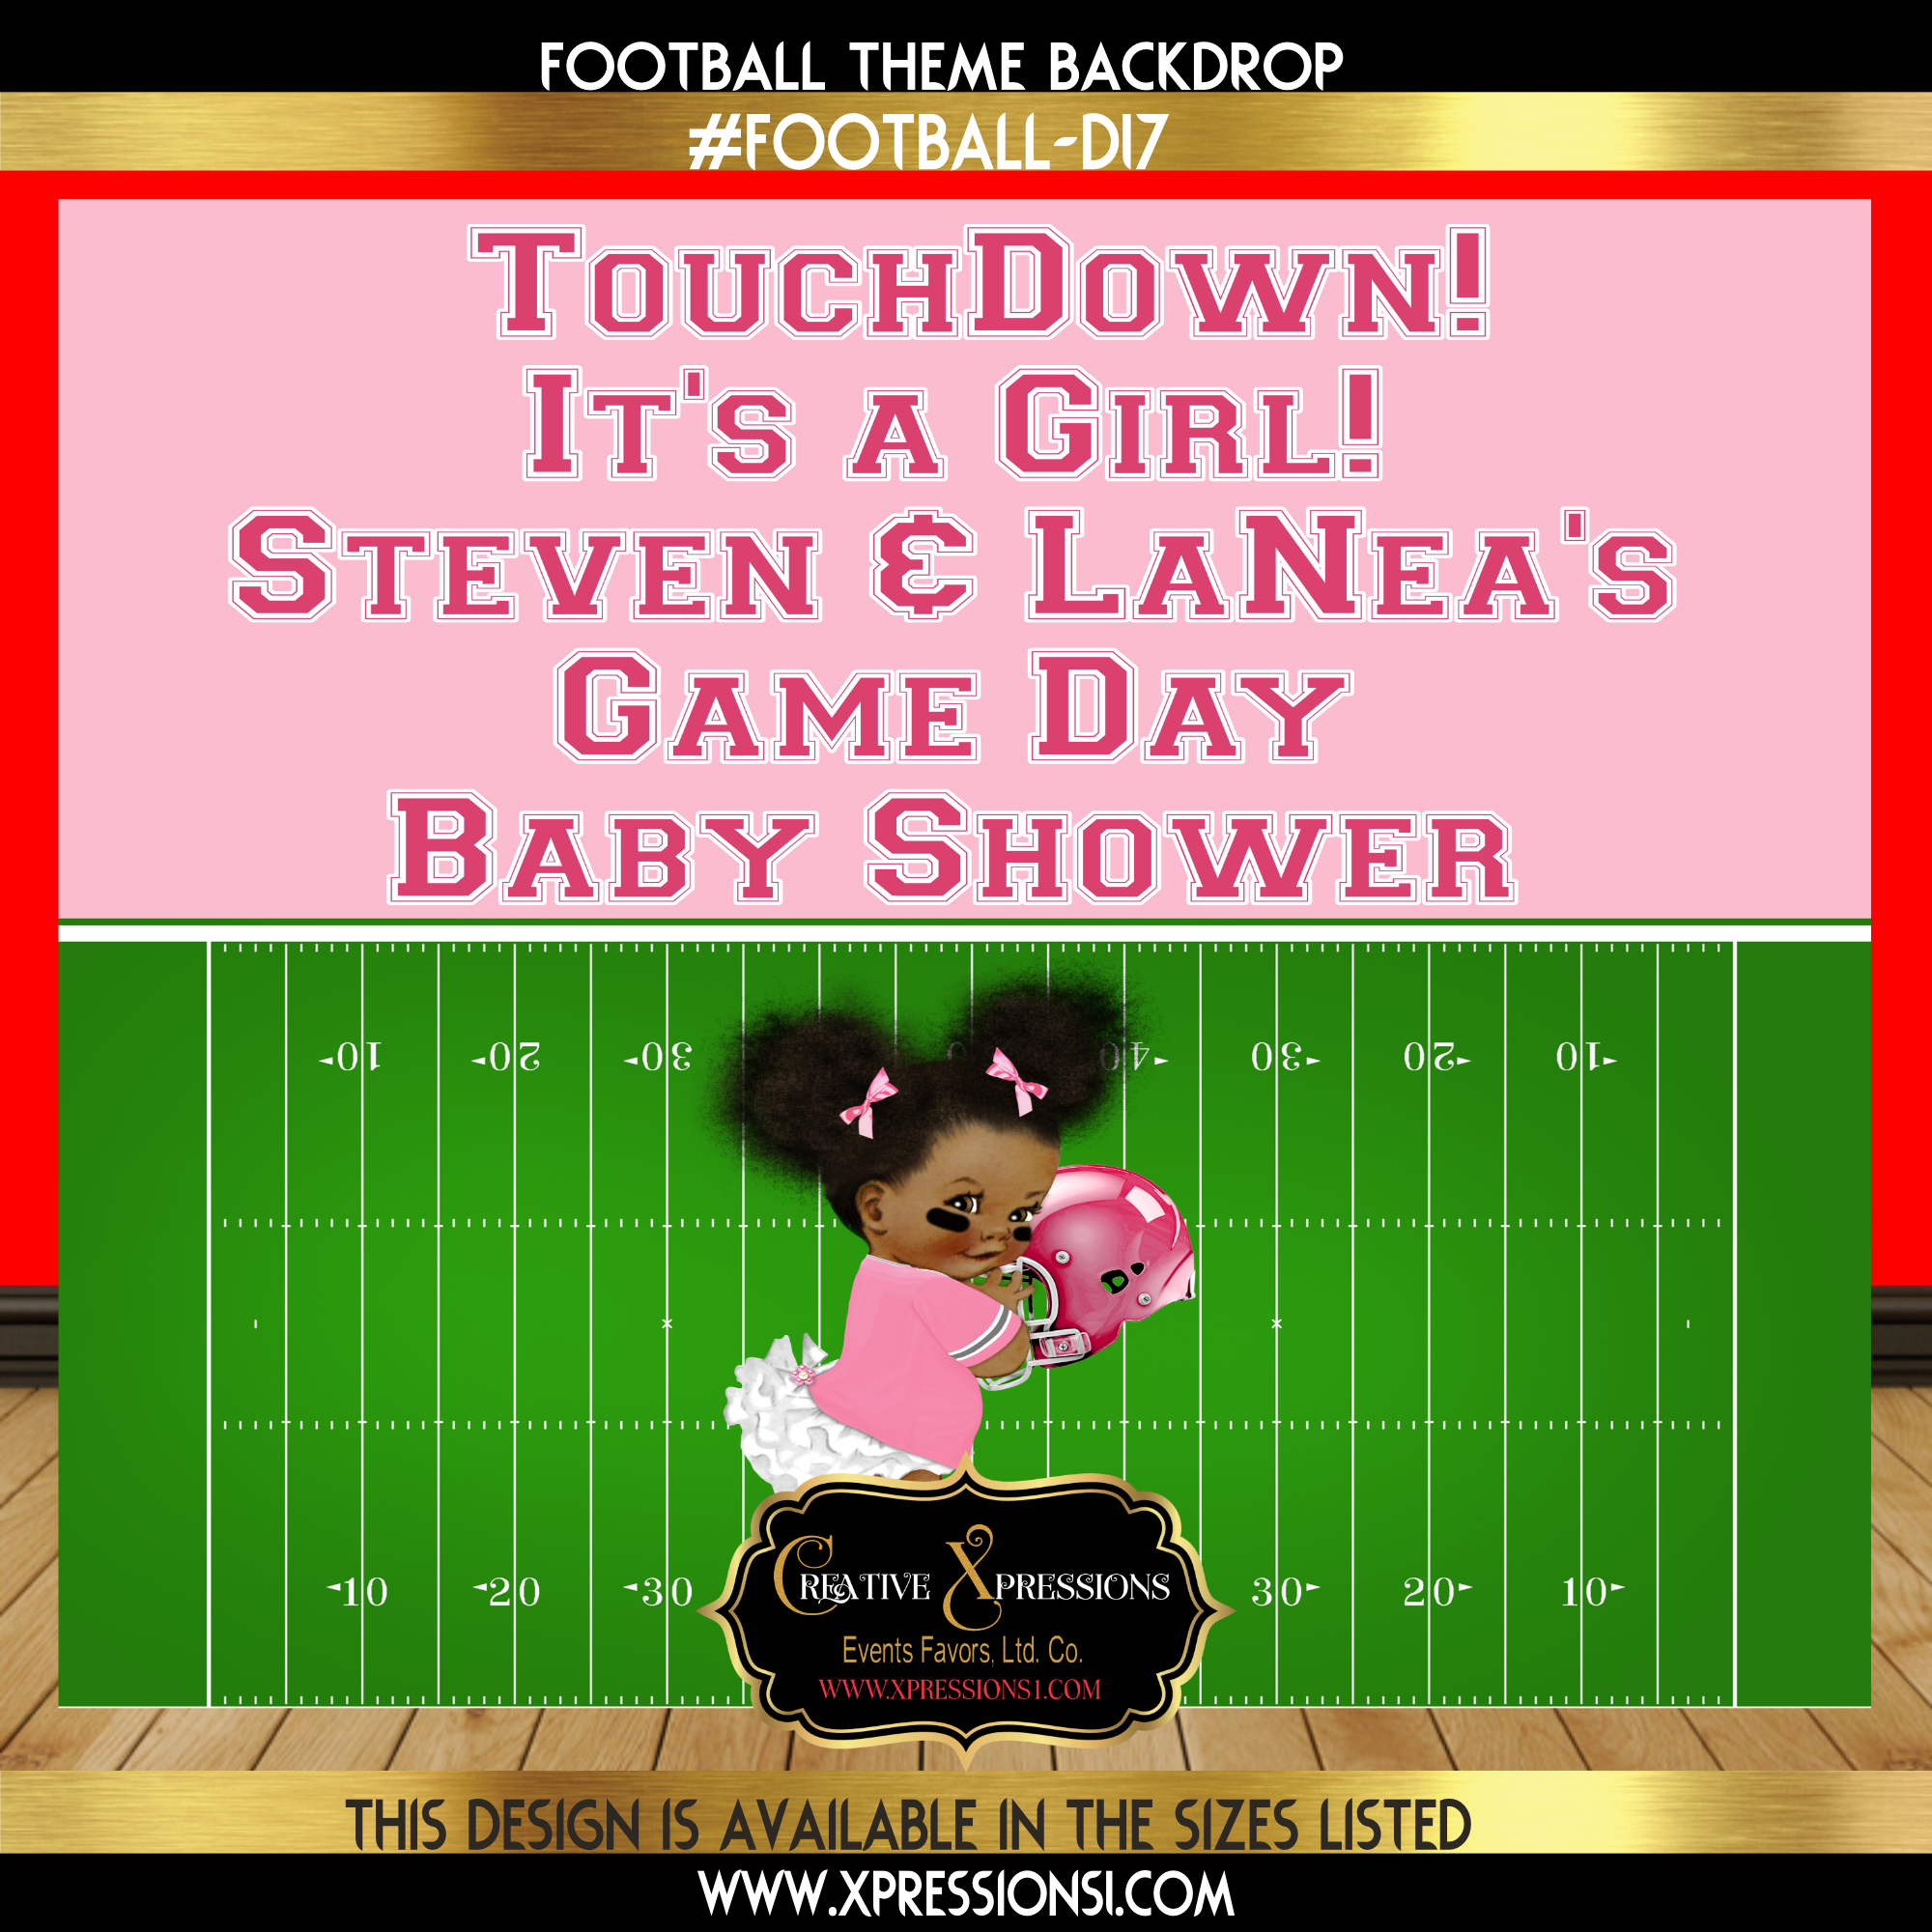 Touchdown on Pink Baby Shower Backdrop